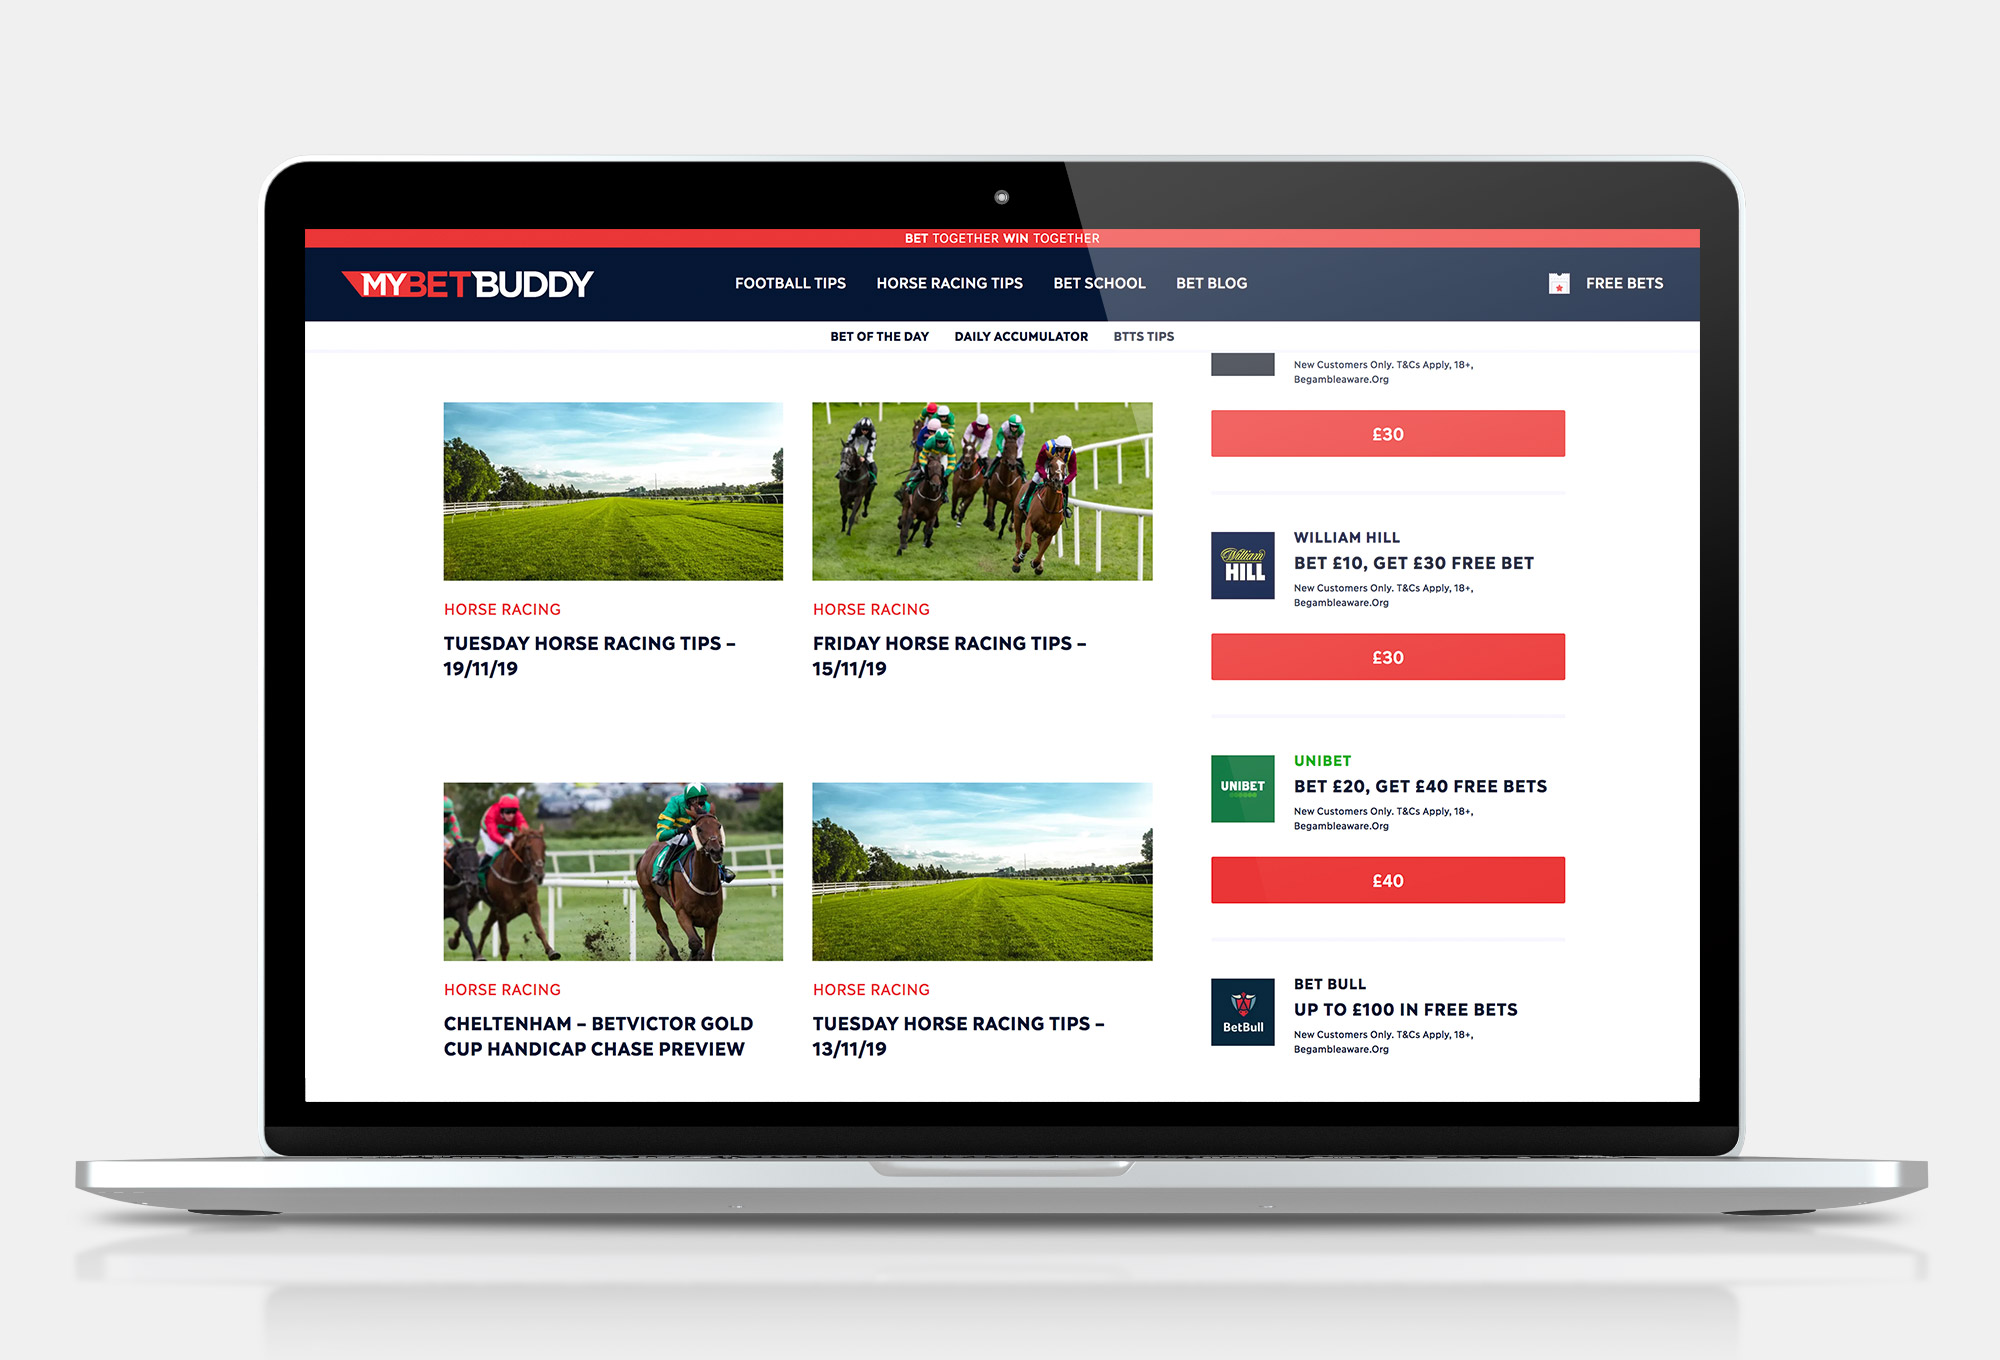 MyBetBuddy Horse Racing Archive Pages